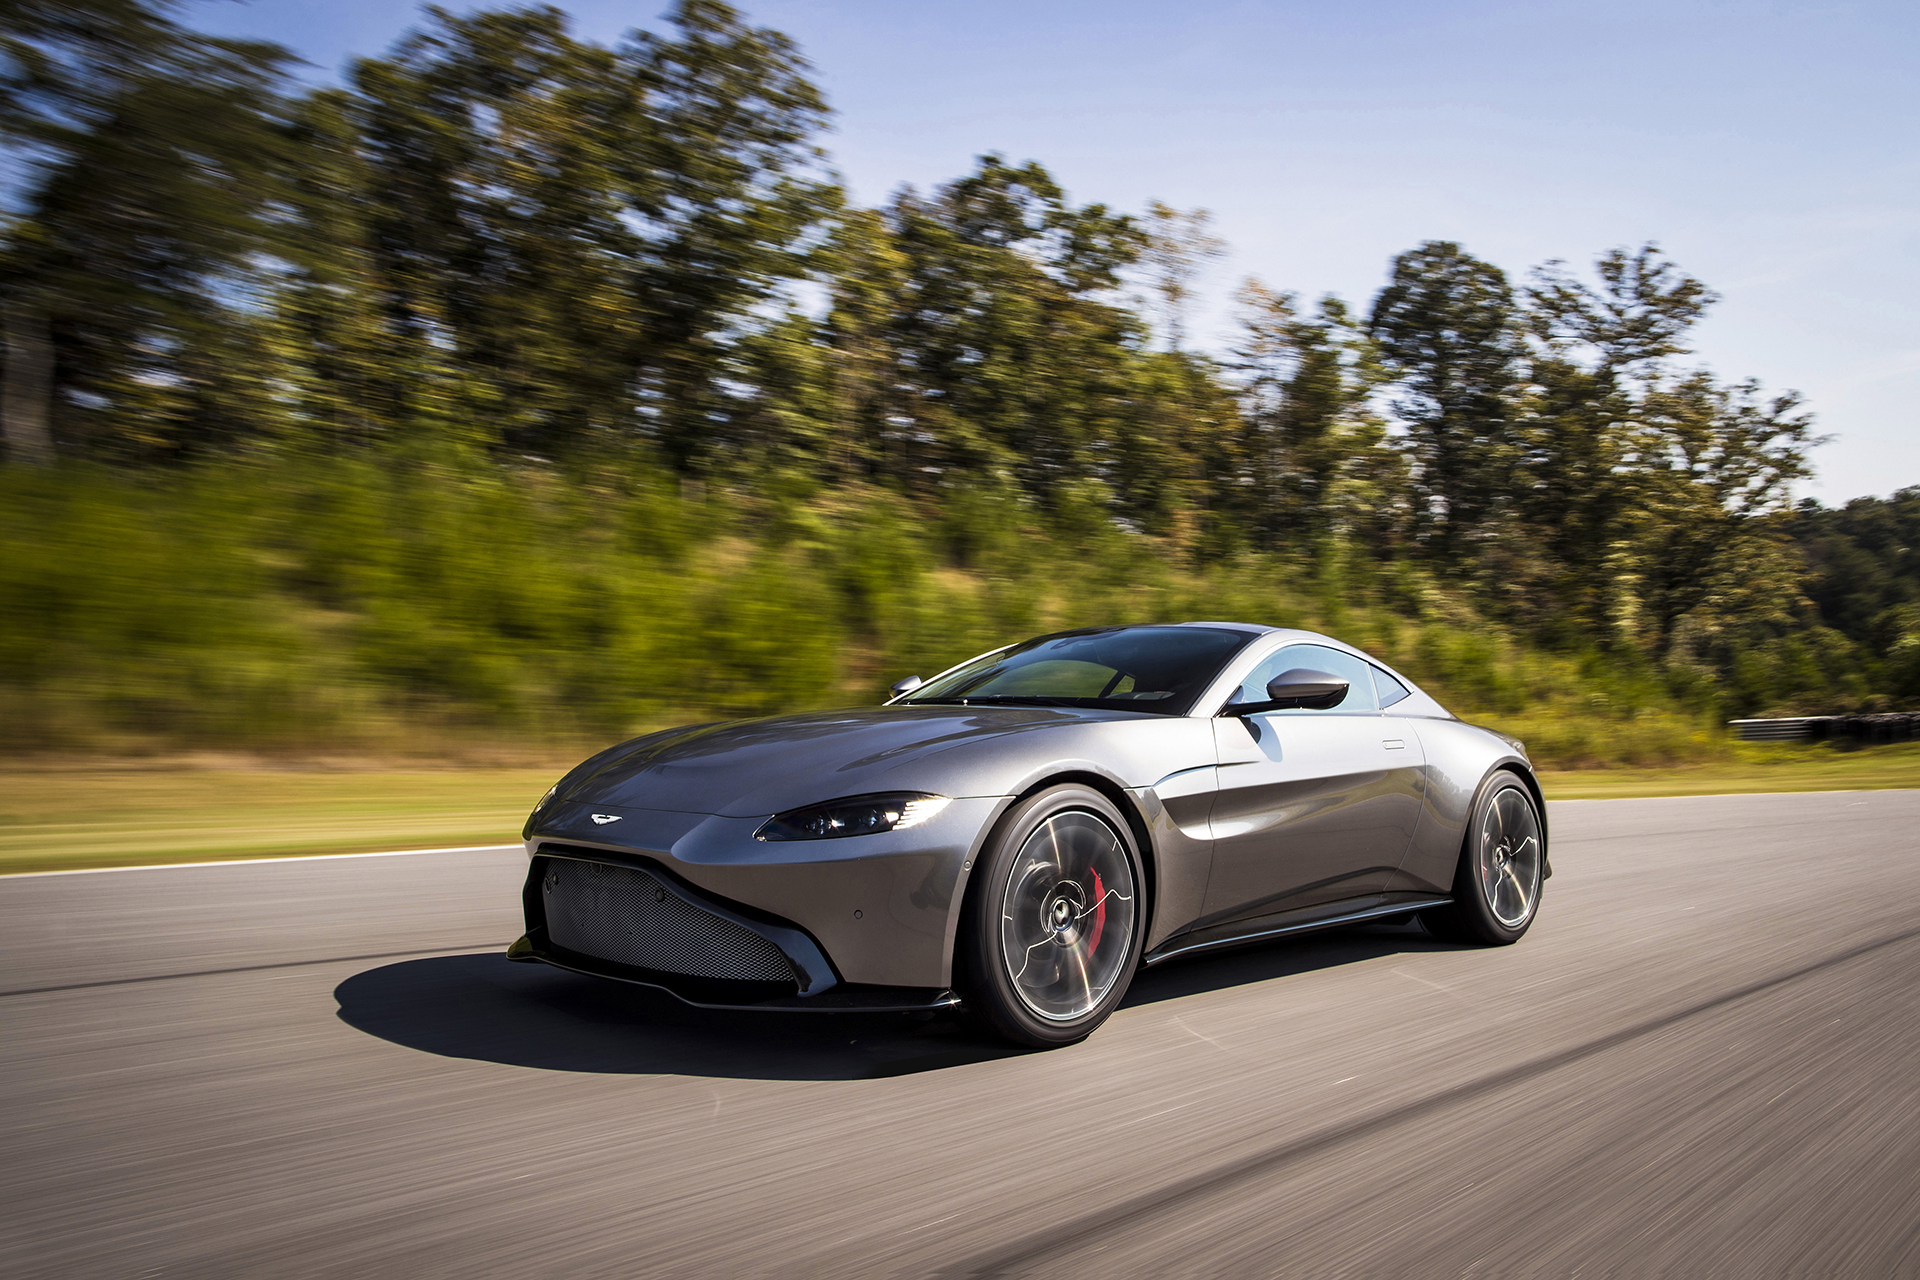 2019 aston martin vantage revealed a predator in shark 39 s clothing the drive. Black Bedroom Furniture Sets. Home Design Ideas